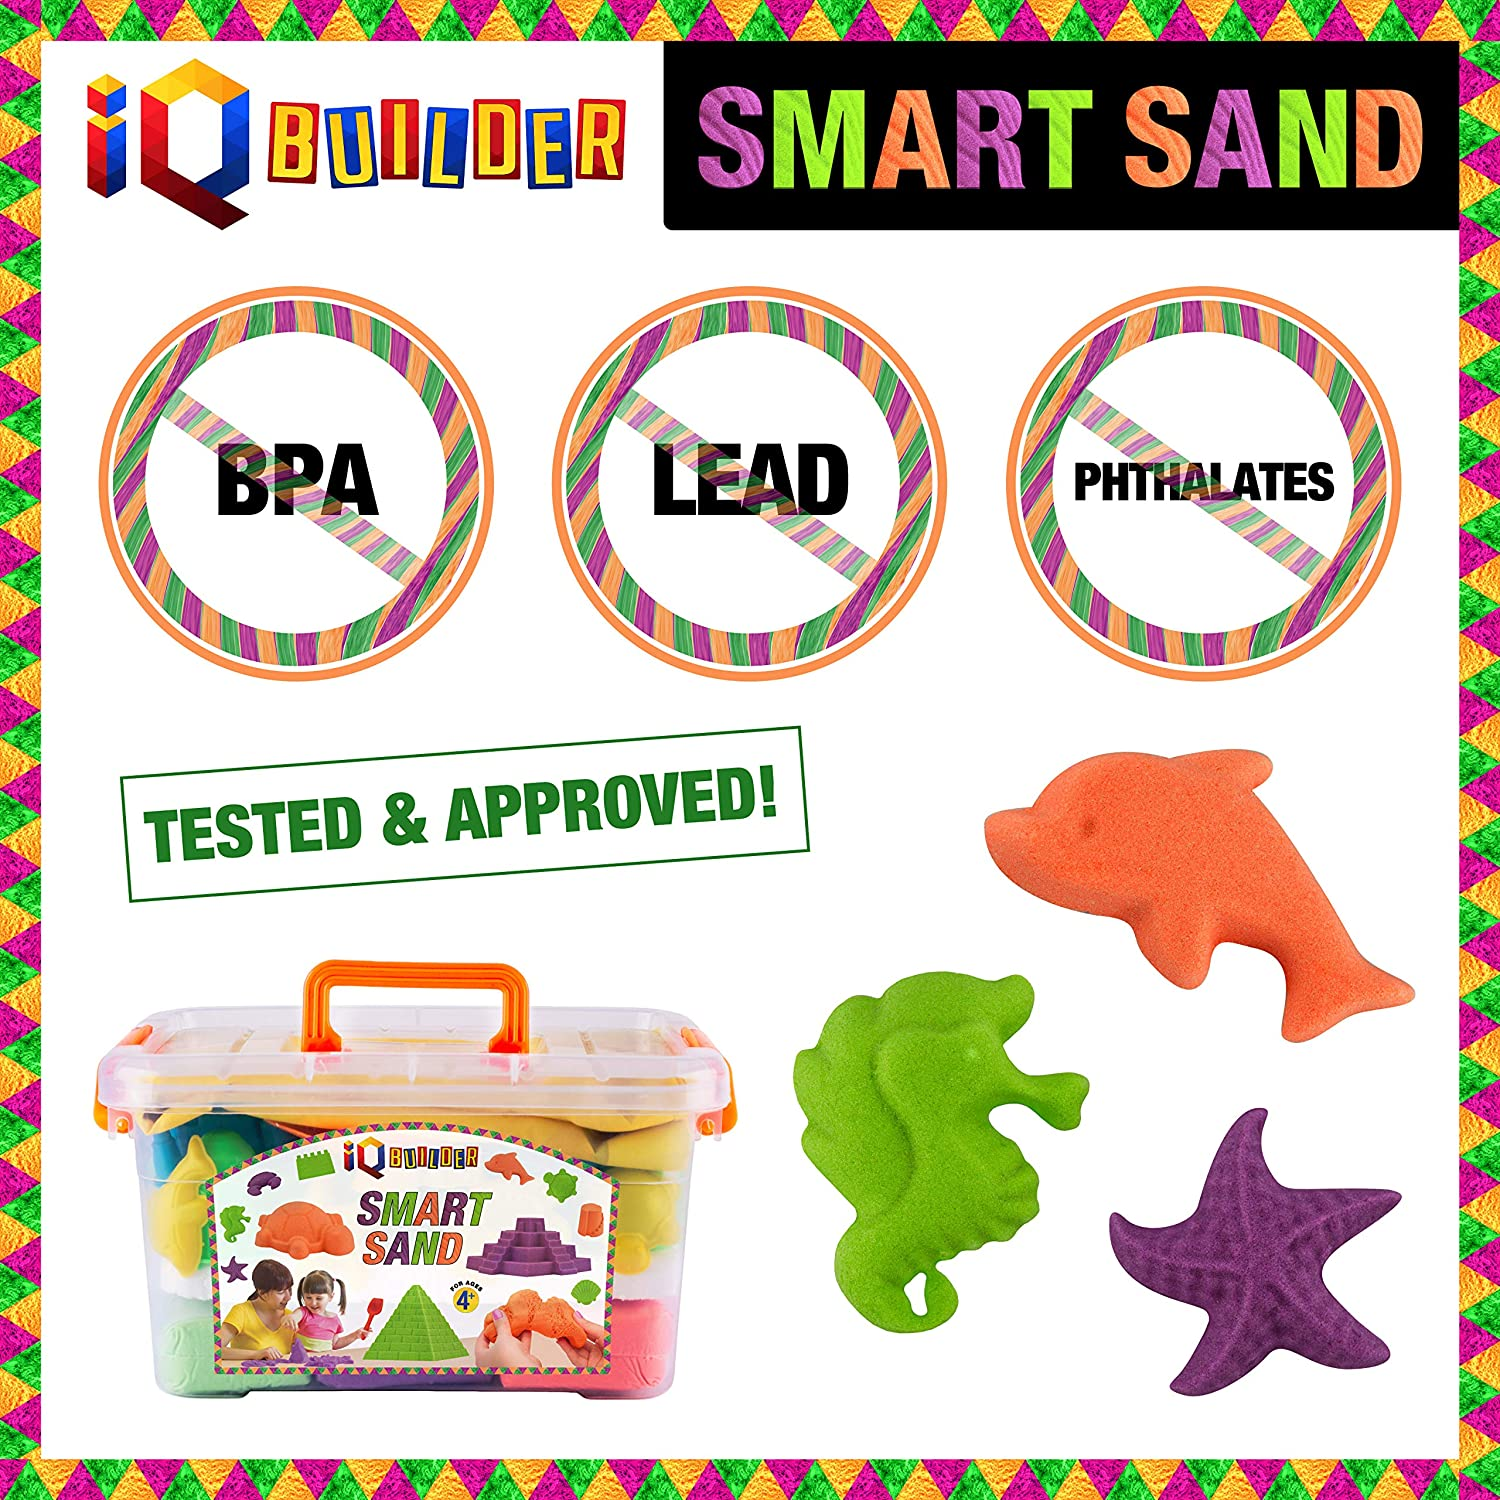 Best Toy Gift for Kids | Fun MOLDABLE Synthetic Beach Sand KIT for Children Sensory Toys Creative Educational Art Play Sand for Boys and Girls Ages 3 4 5 6 7 8 9 10 Year Old IQ BUILDER